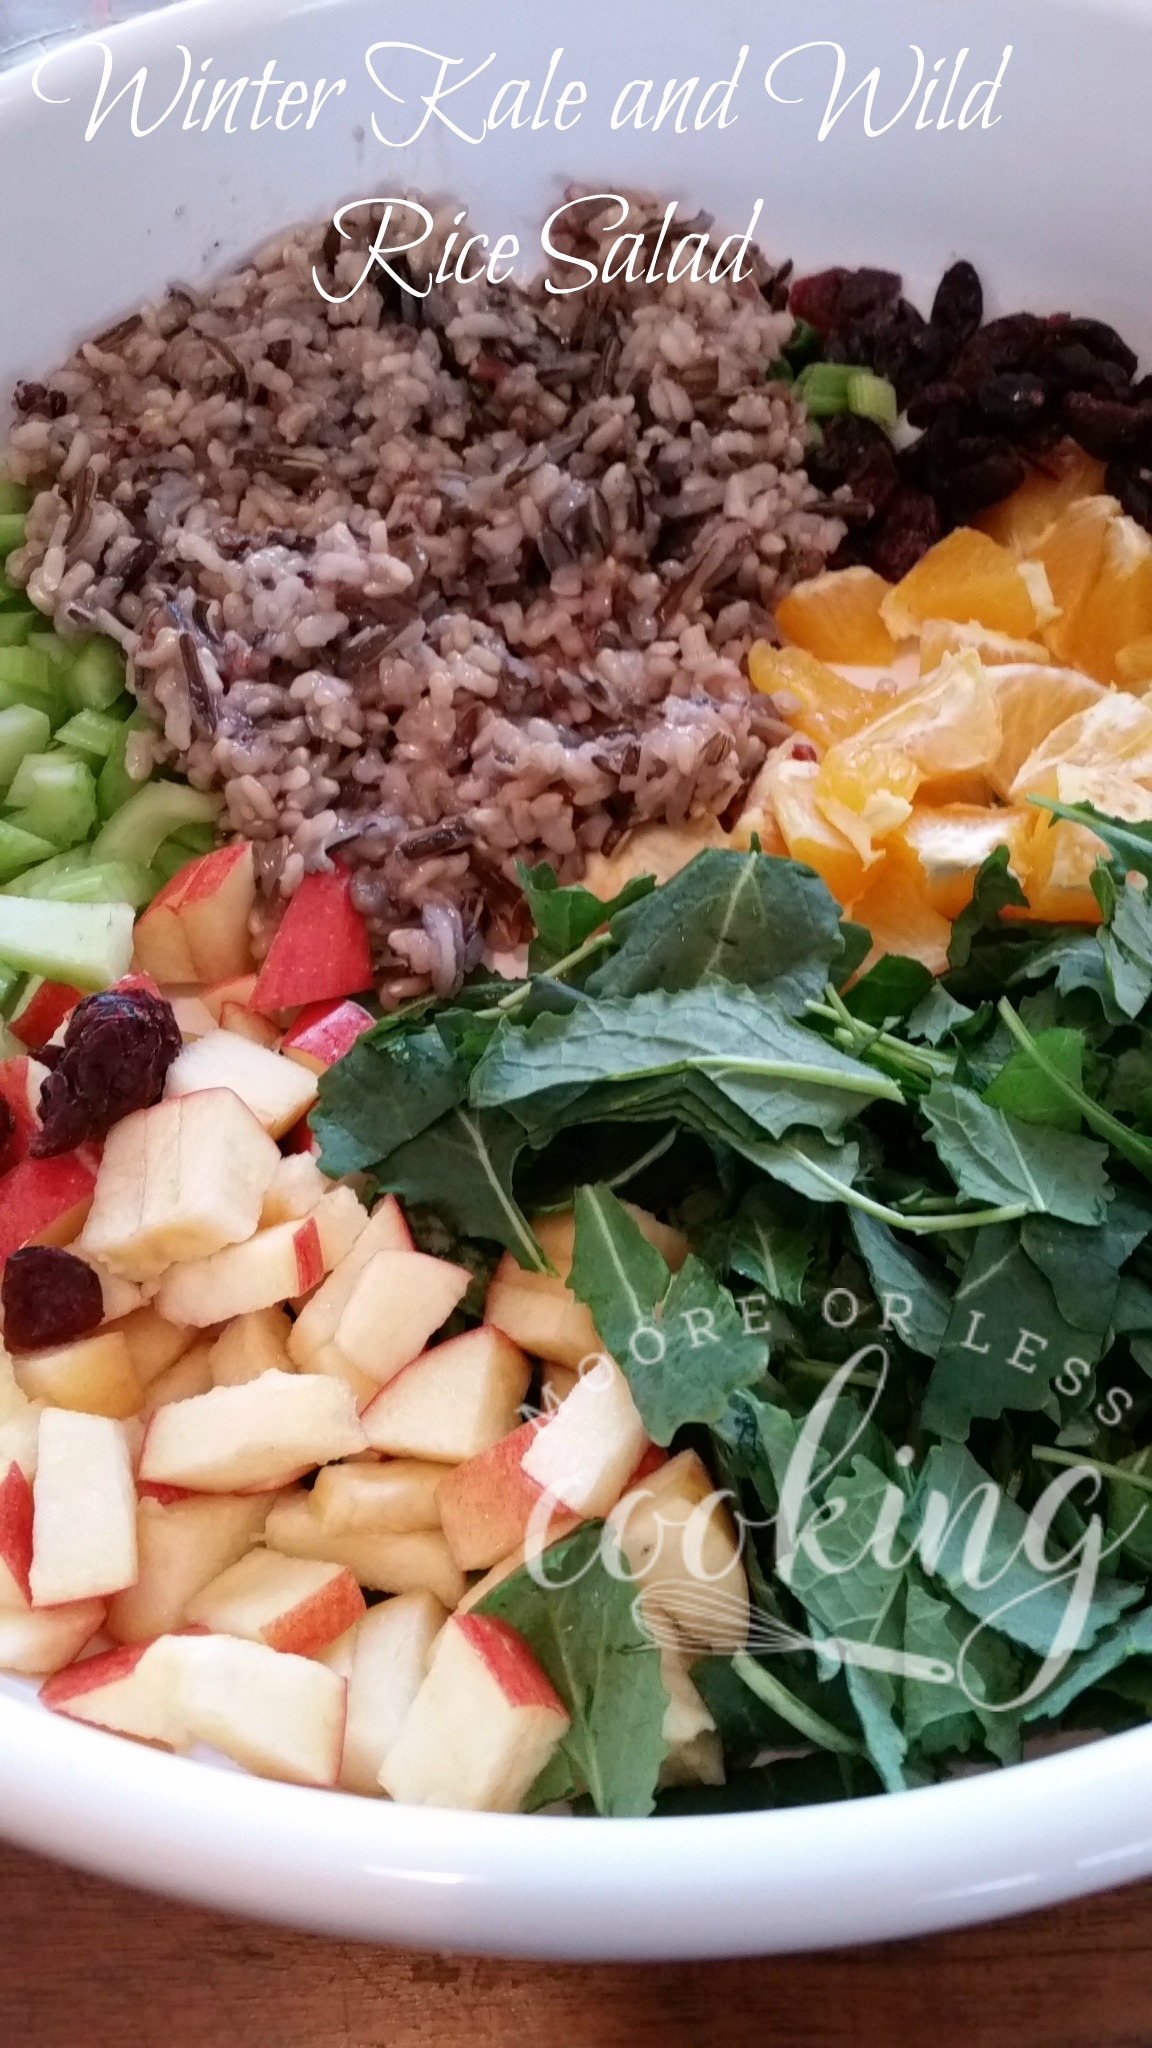 Winter Kale and Wild Rice Salad